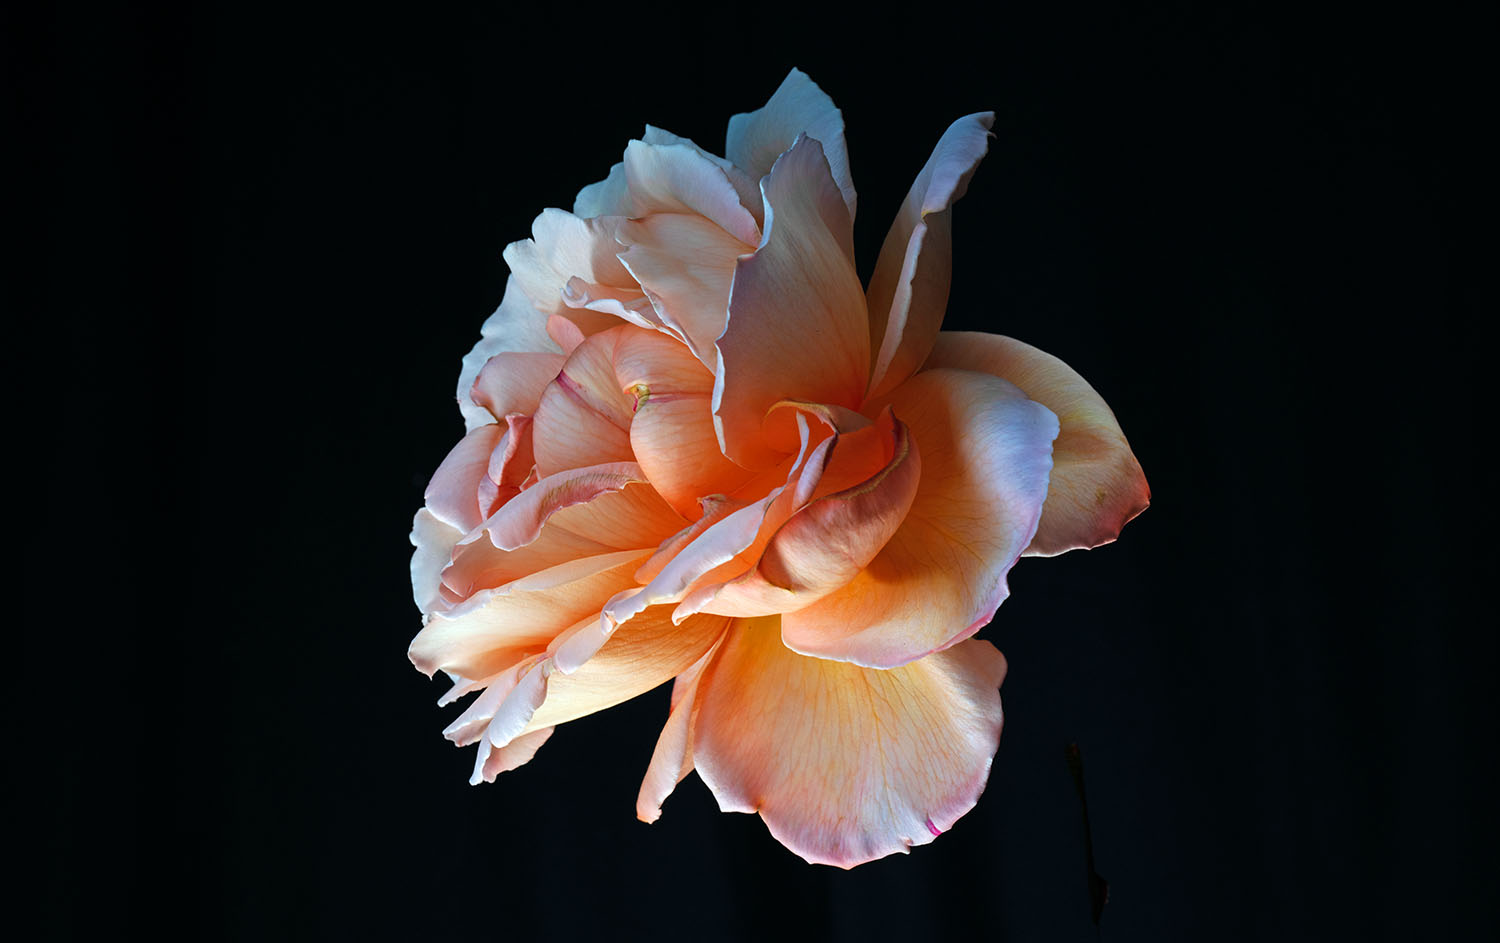 Rob Love Photography, Melbourne. Photo of Flower, Ageless Beauty